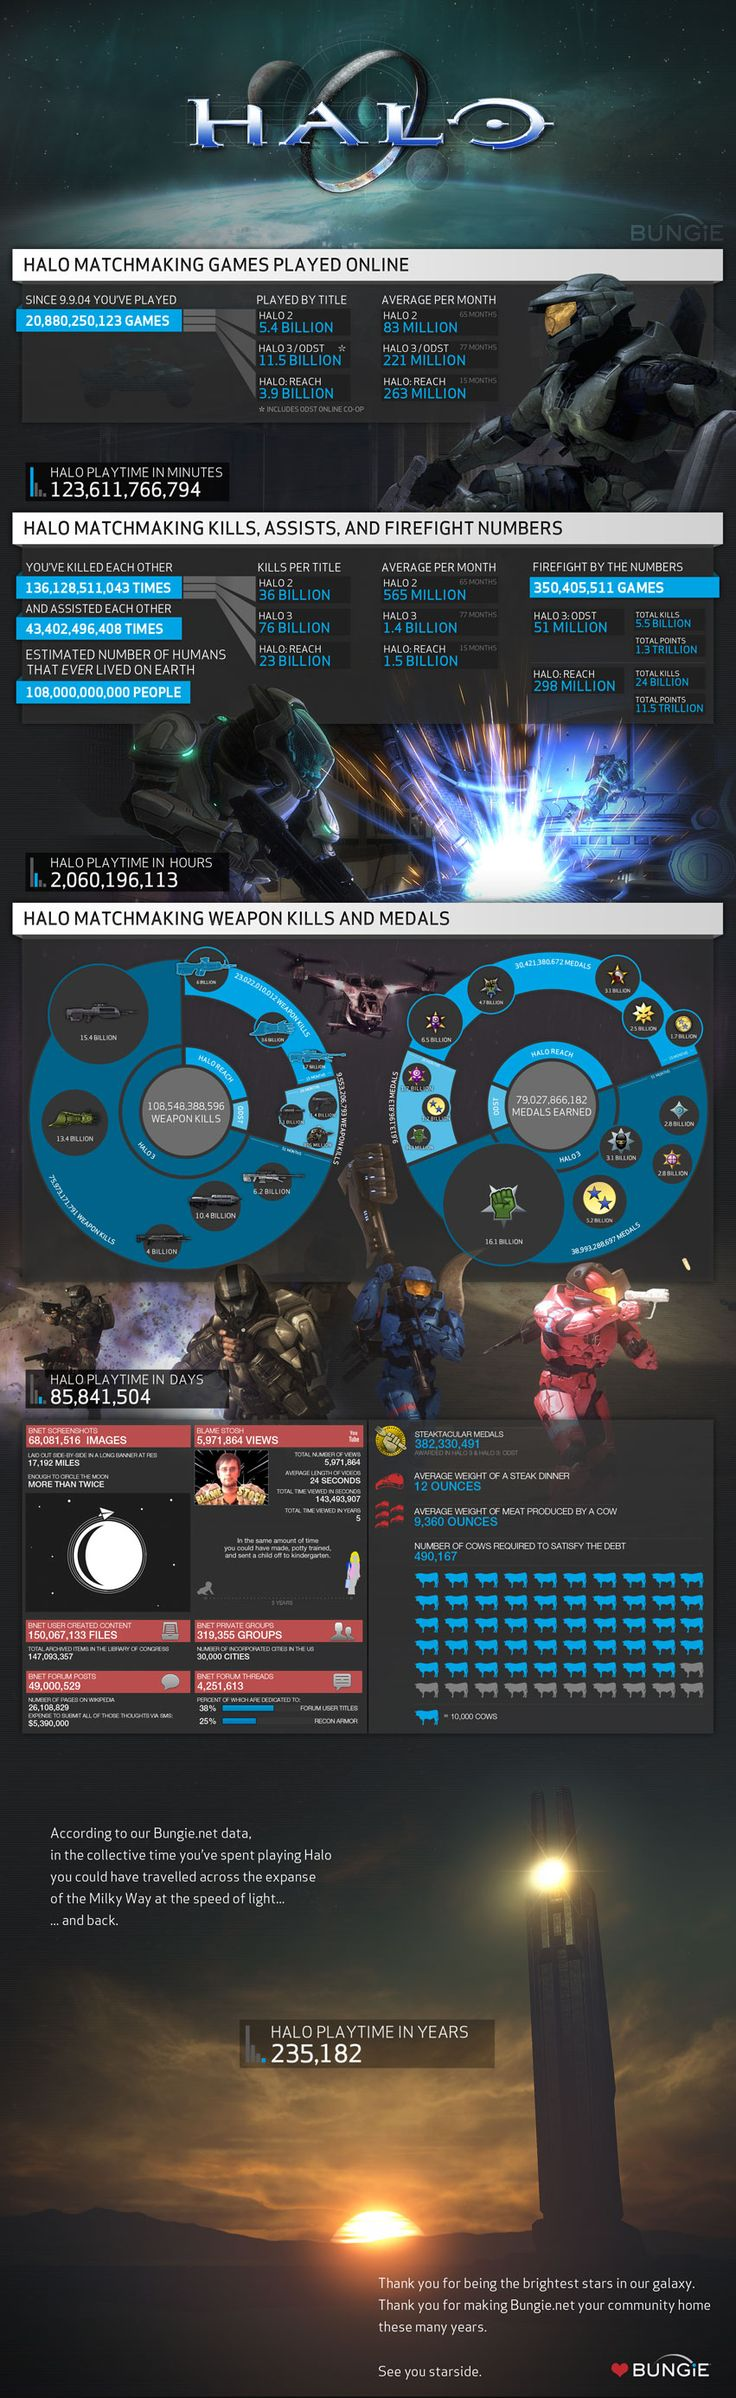 Halo Reach OnlineBeats, Halo Reach, Halo Games, Gadgets, Videos Games, Halo Stats, Bungie, 10 Years, Halo Infographic